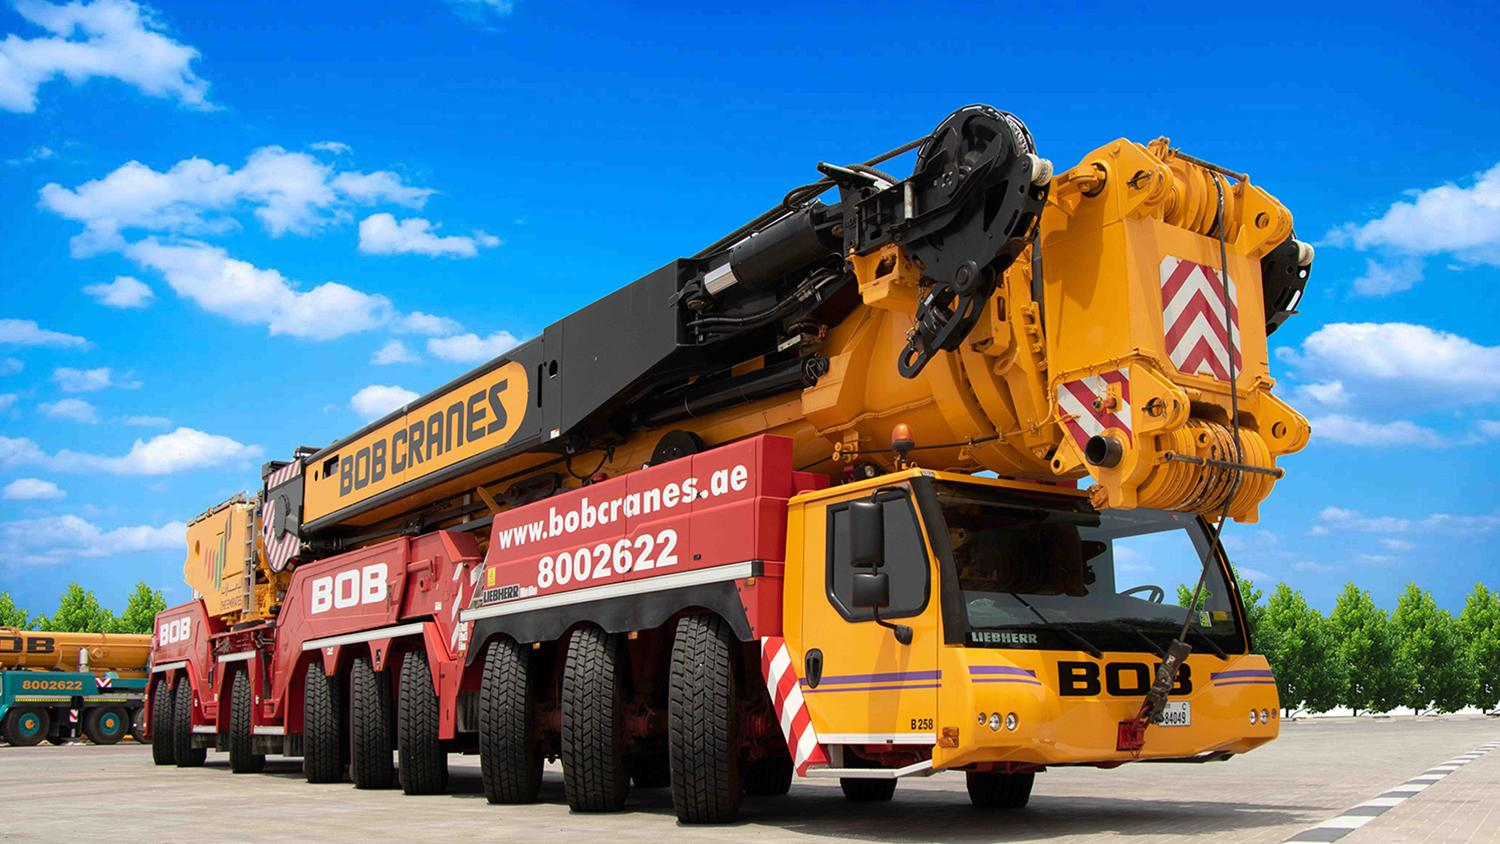 Upgraded Now to 800 Ton mobile crane addition to our fleet